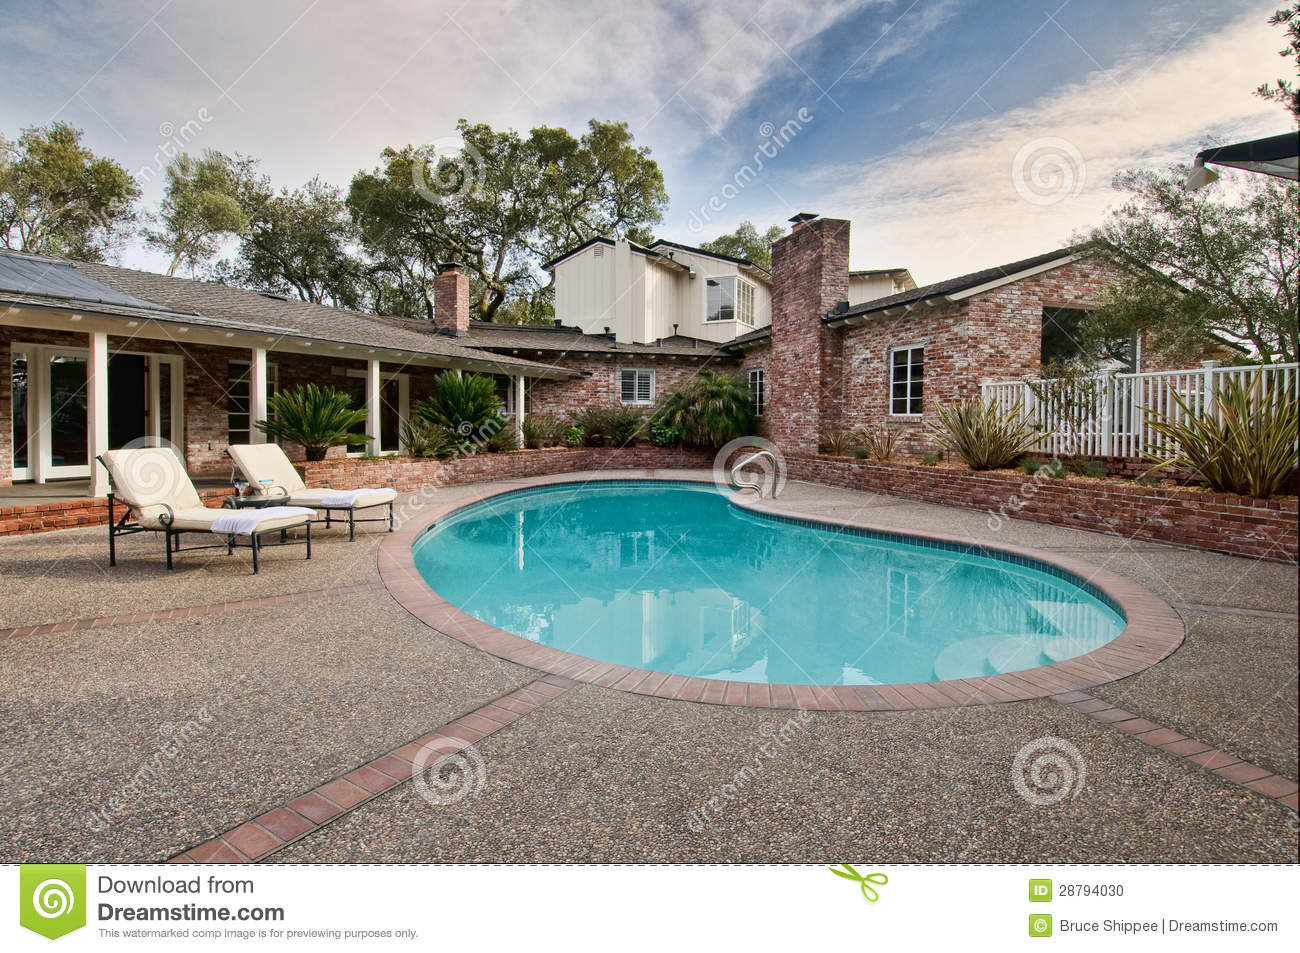 Pictures Of Beautiful Backyard Pools : Beautiful Backyard Pool Stock Photo  Image 28794030